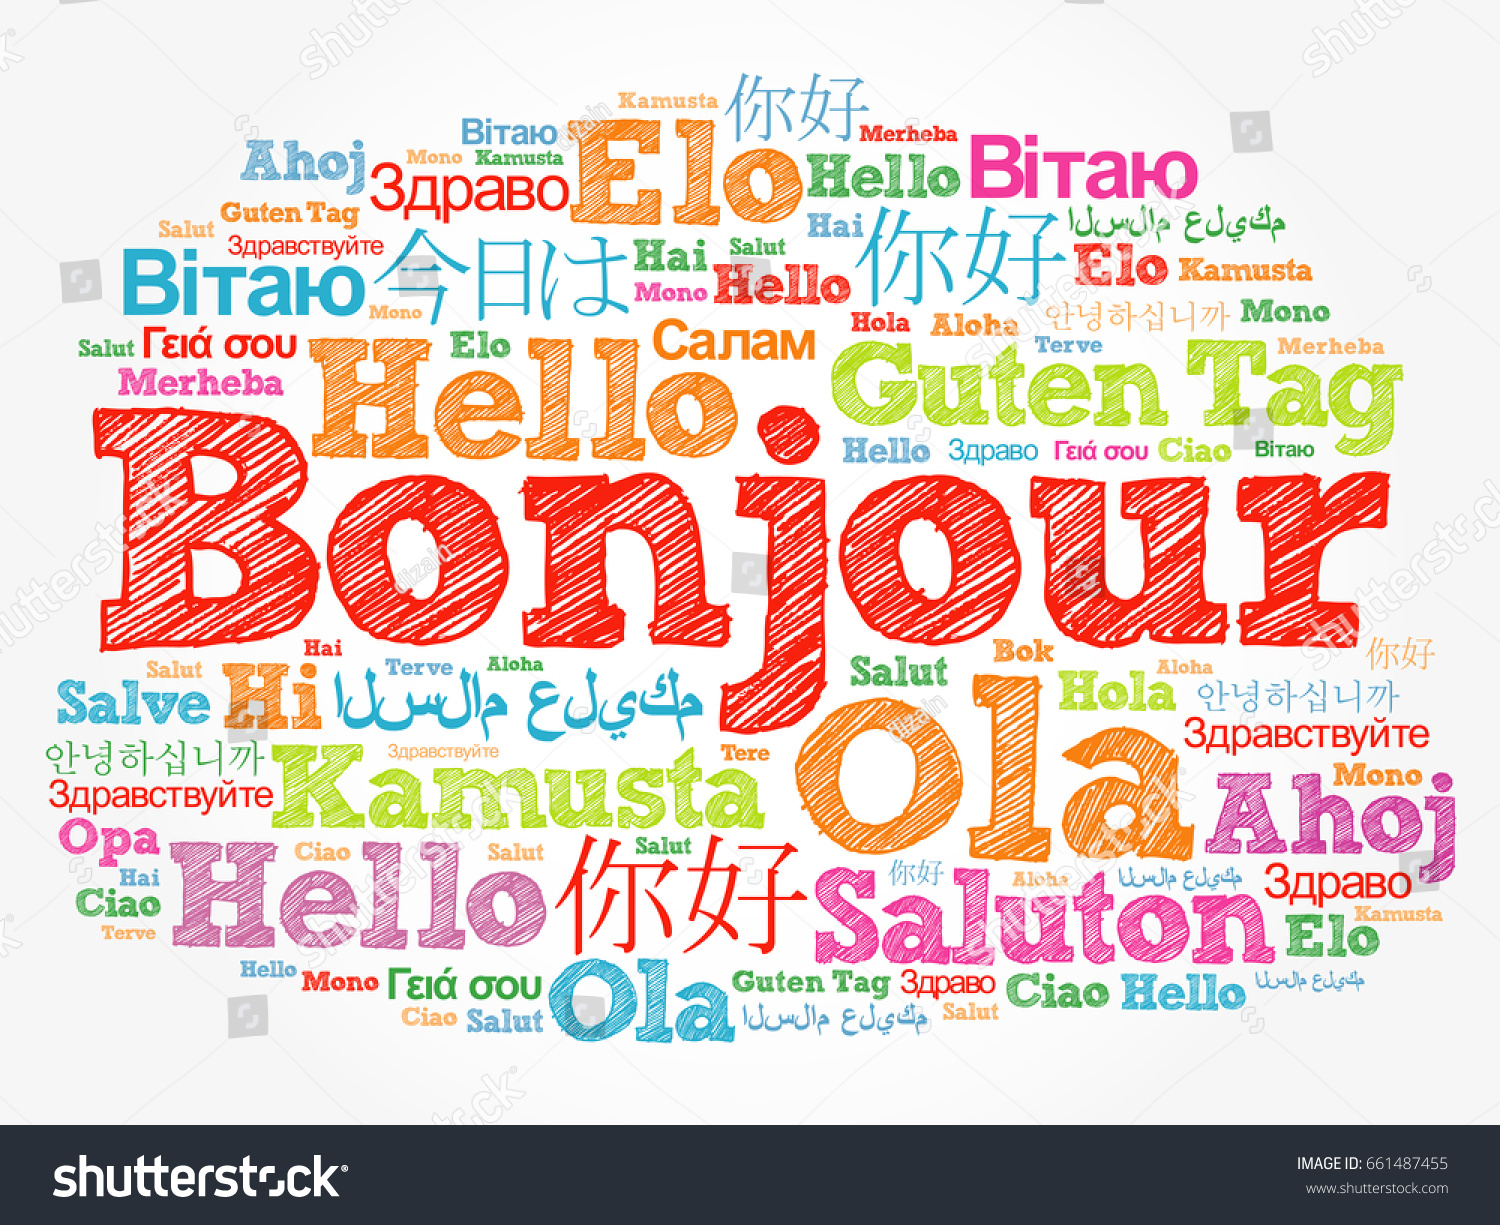 Bonjour hello greeting french word cloud stock illustration bonjour hello greeting in french word cloud in different languages of the world kristyandbryce Gallery